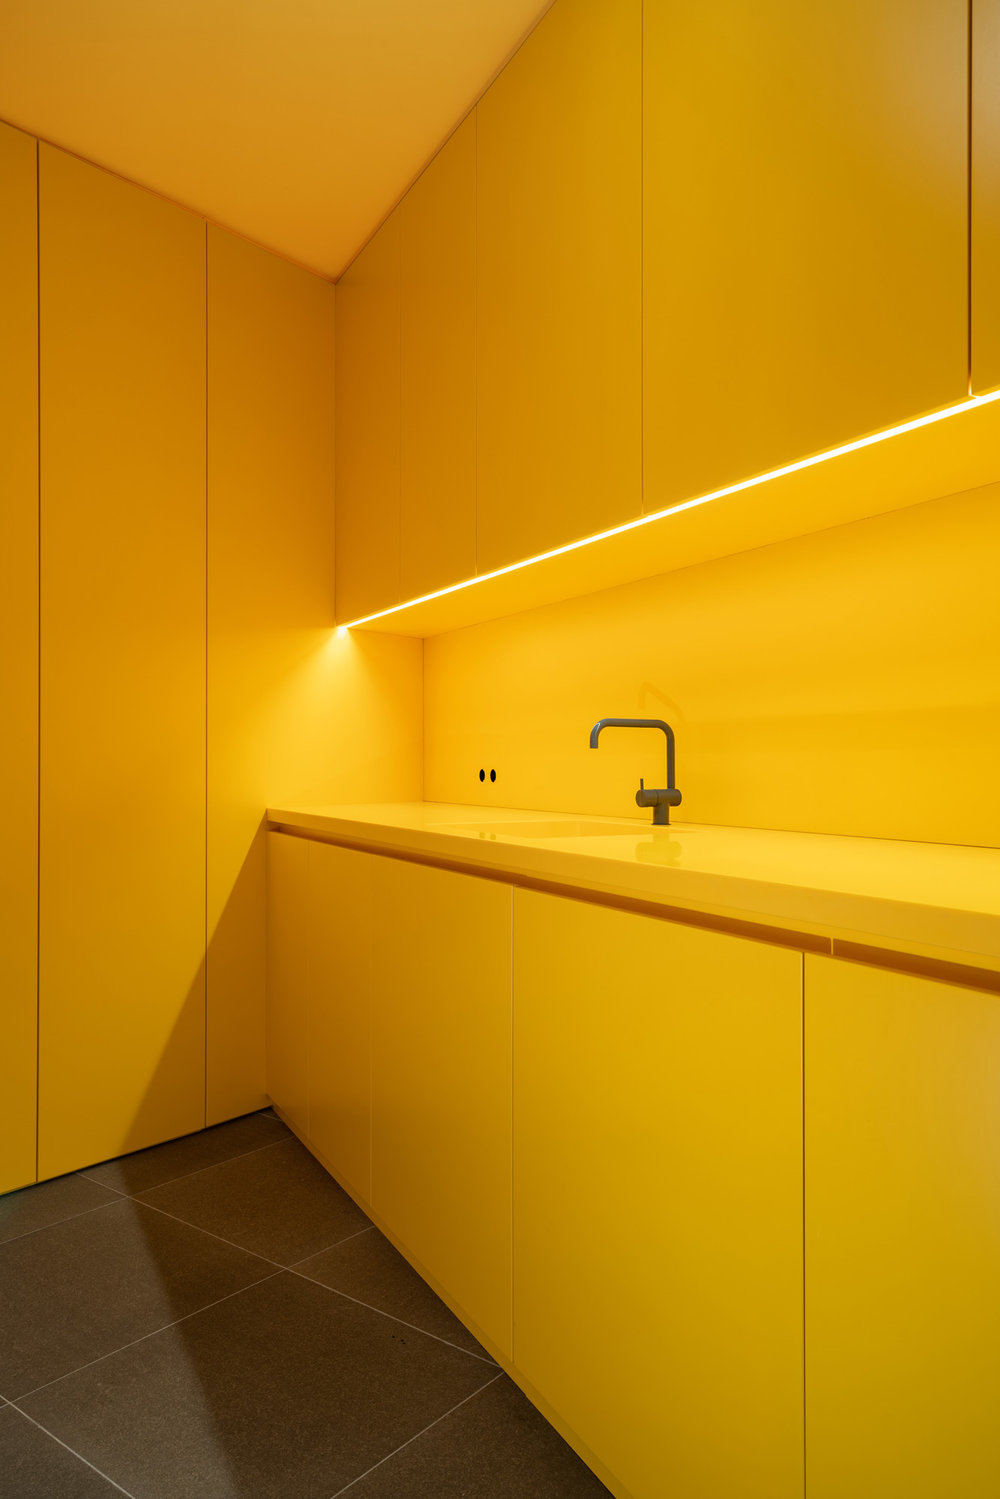 SEBASTIAN ZENKER INTERIOR DESIGN - LAUNDRY ROOM  1.jpg